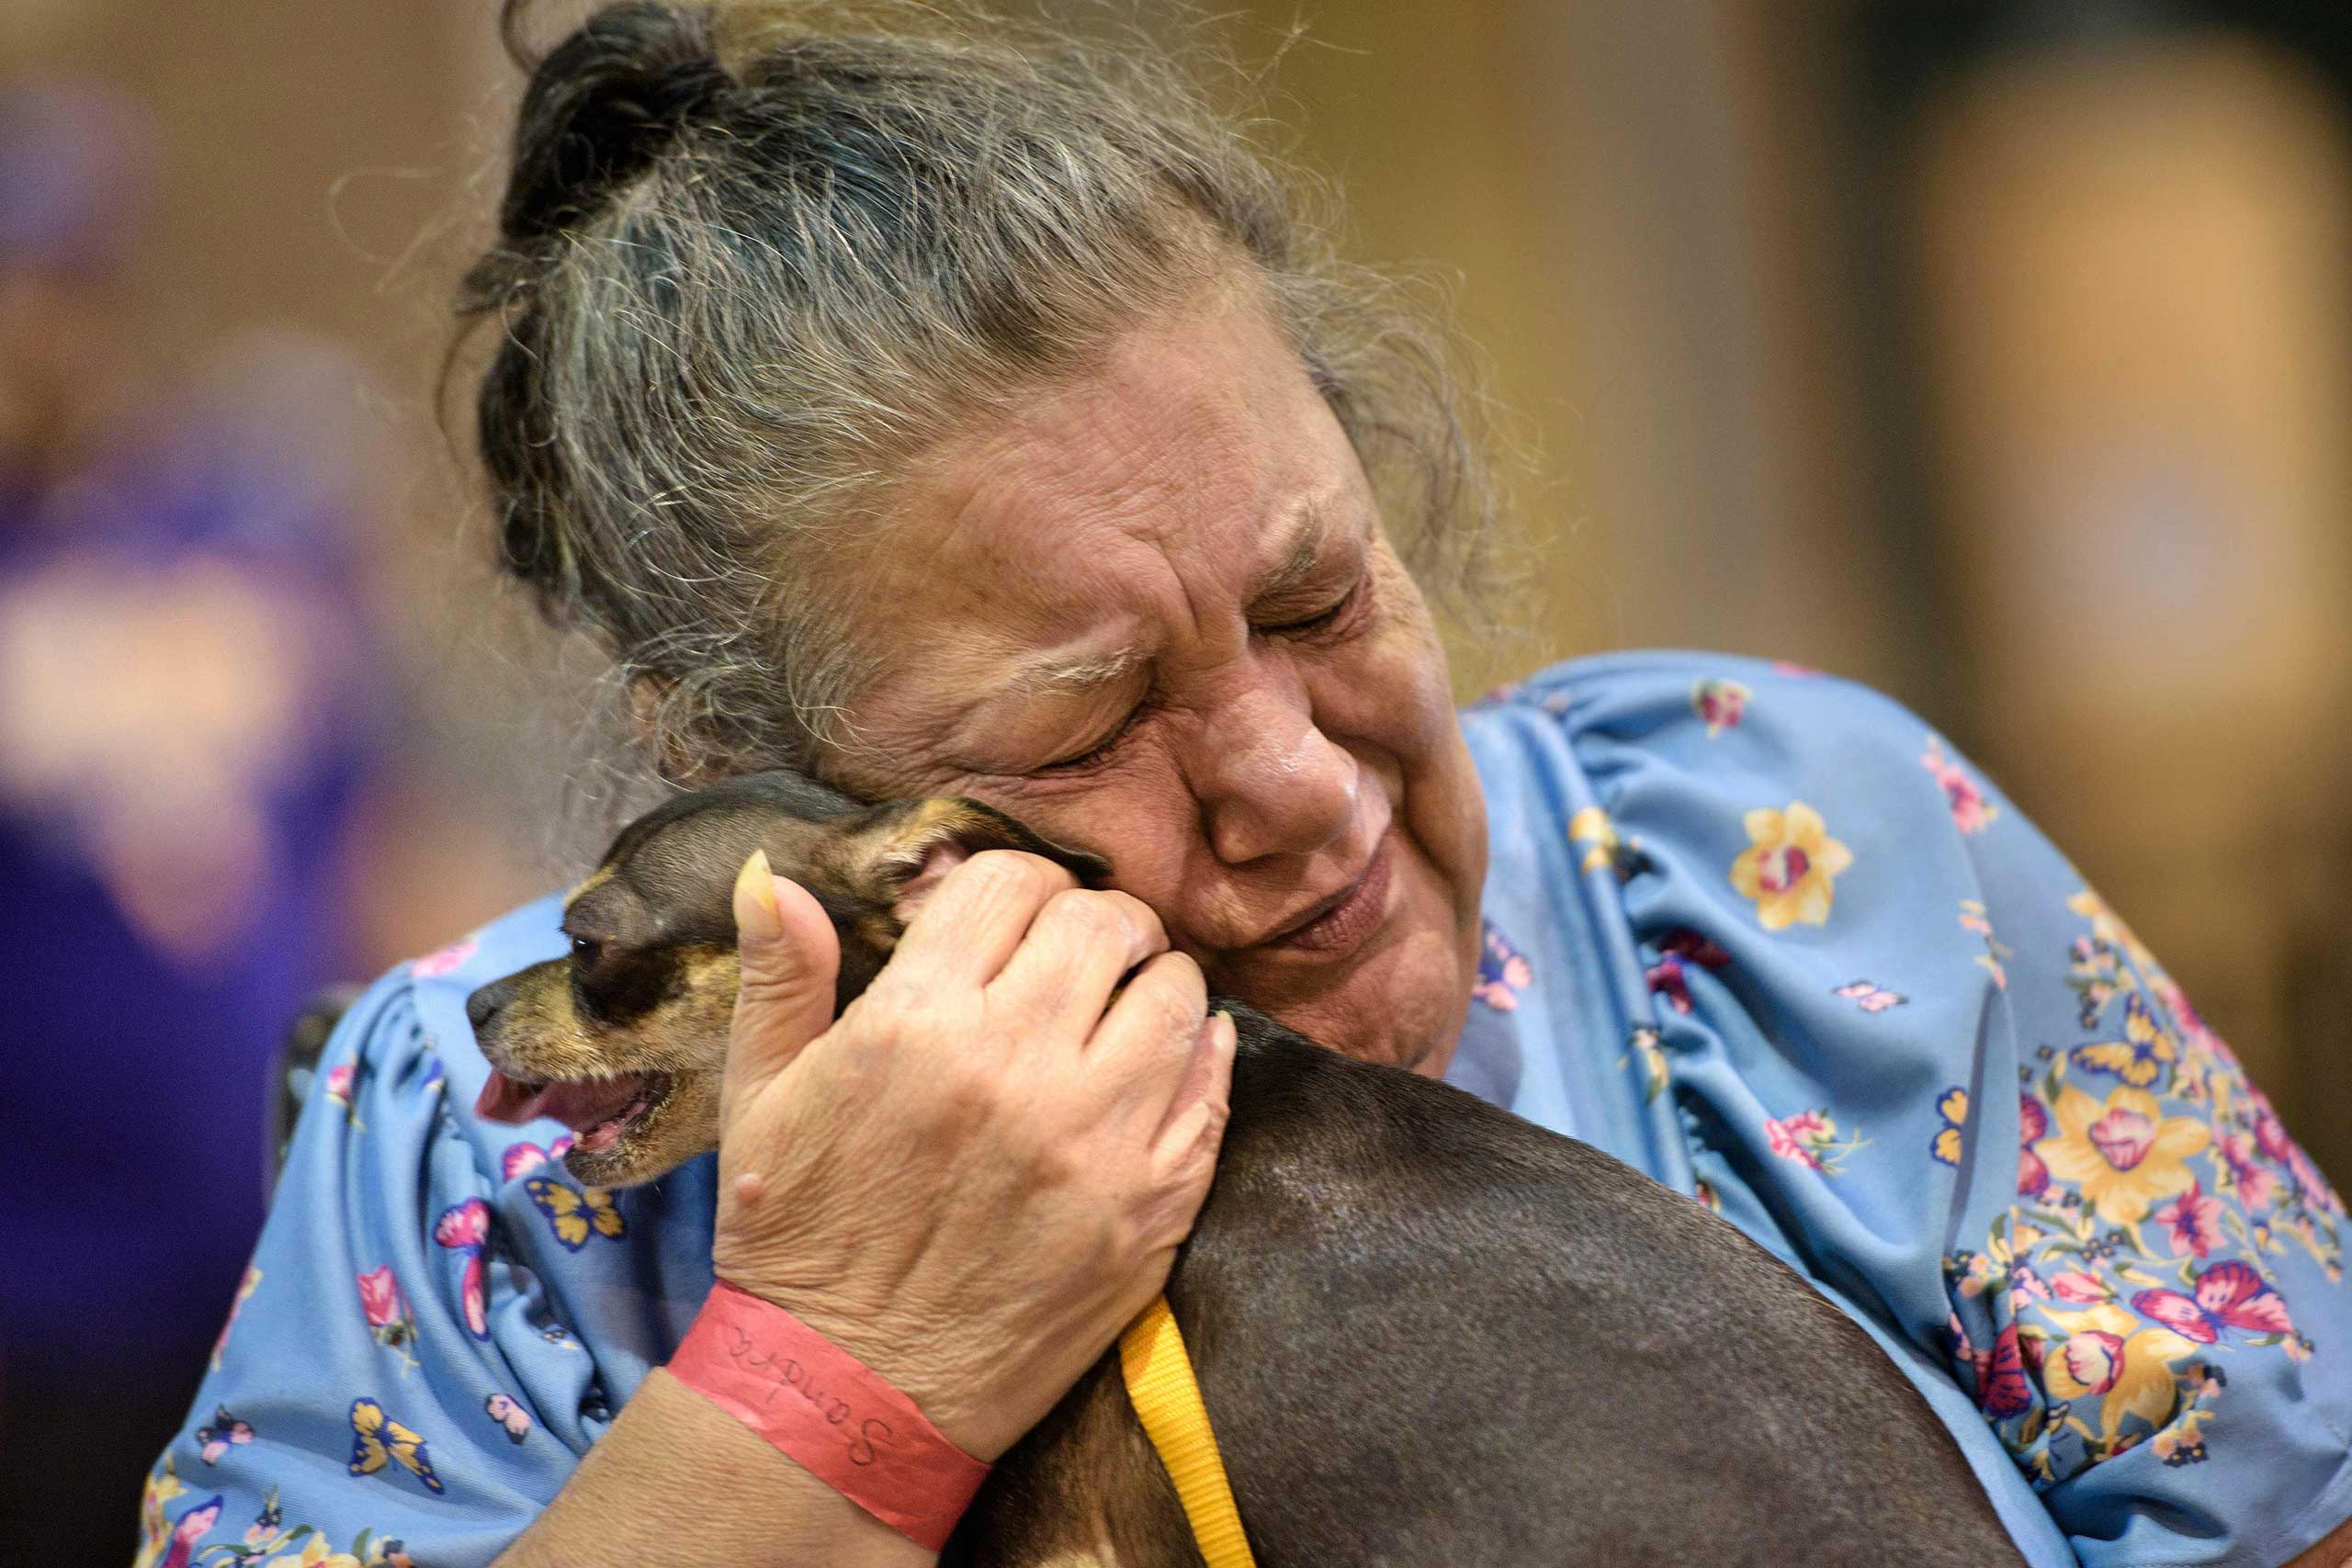 Sandra Montanaro holds her dog, Dixy, during one of two 20-minute daily visits at a temporary animal shelter the Lamar Dixon Expo Center, near a flood victims shelter, in Gonzales, La., on Aug. 16, 2016.